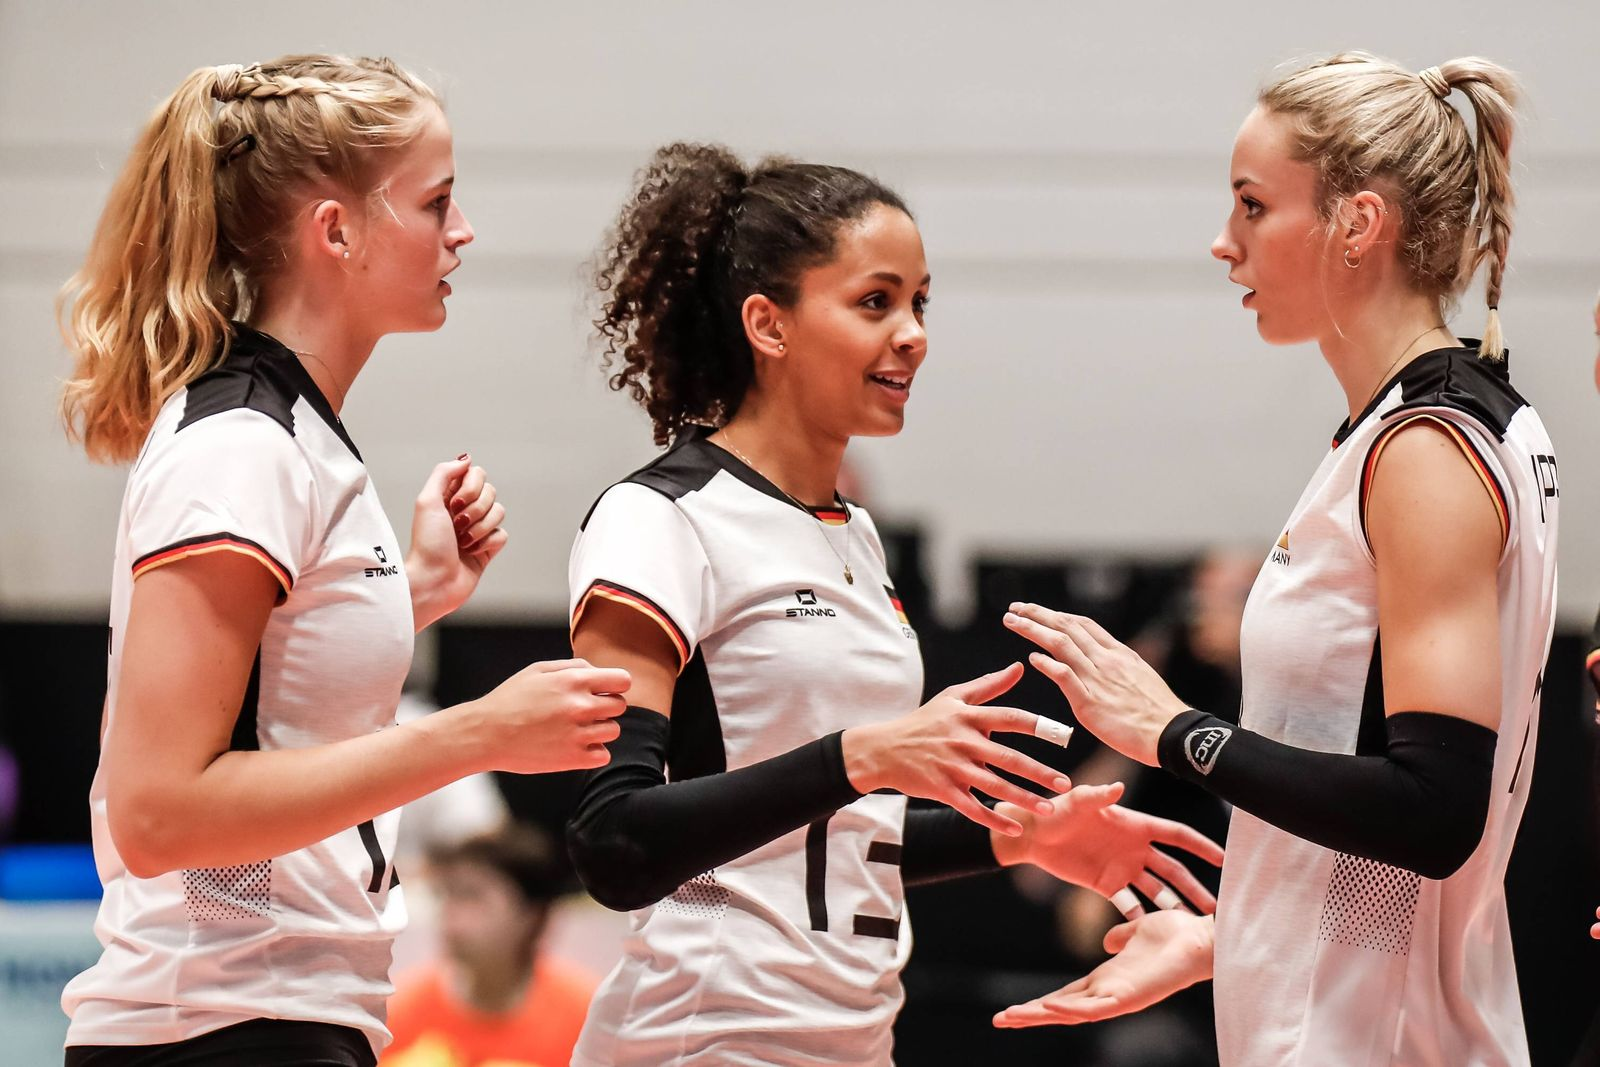 Montreux Volley Masters Germany vs Poland 2019 Hanna Orthmann Germany 12 Denise Imoudu Germany